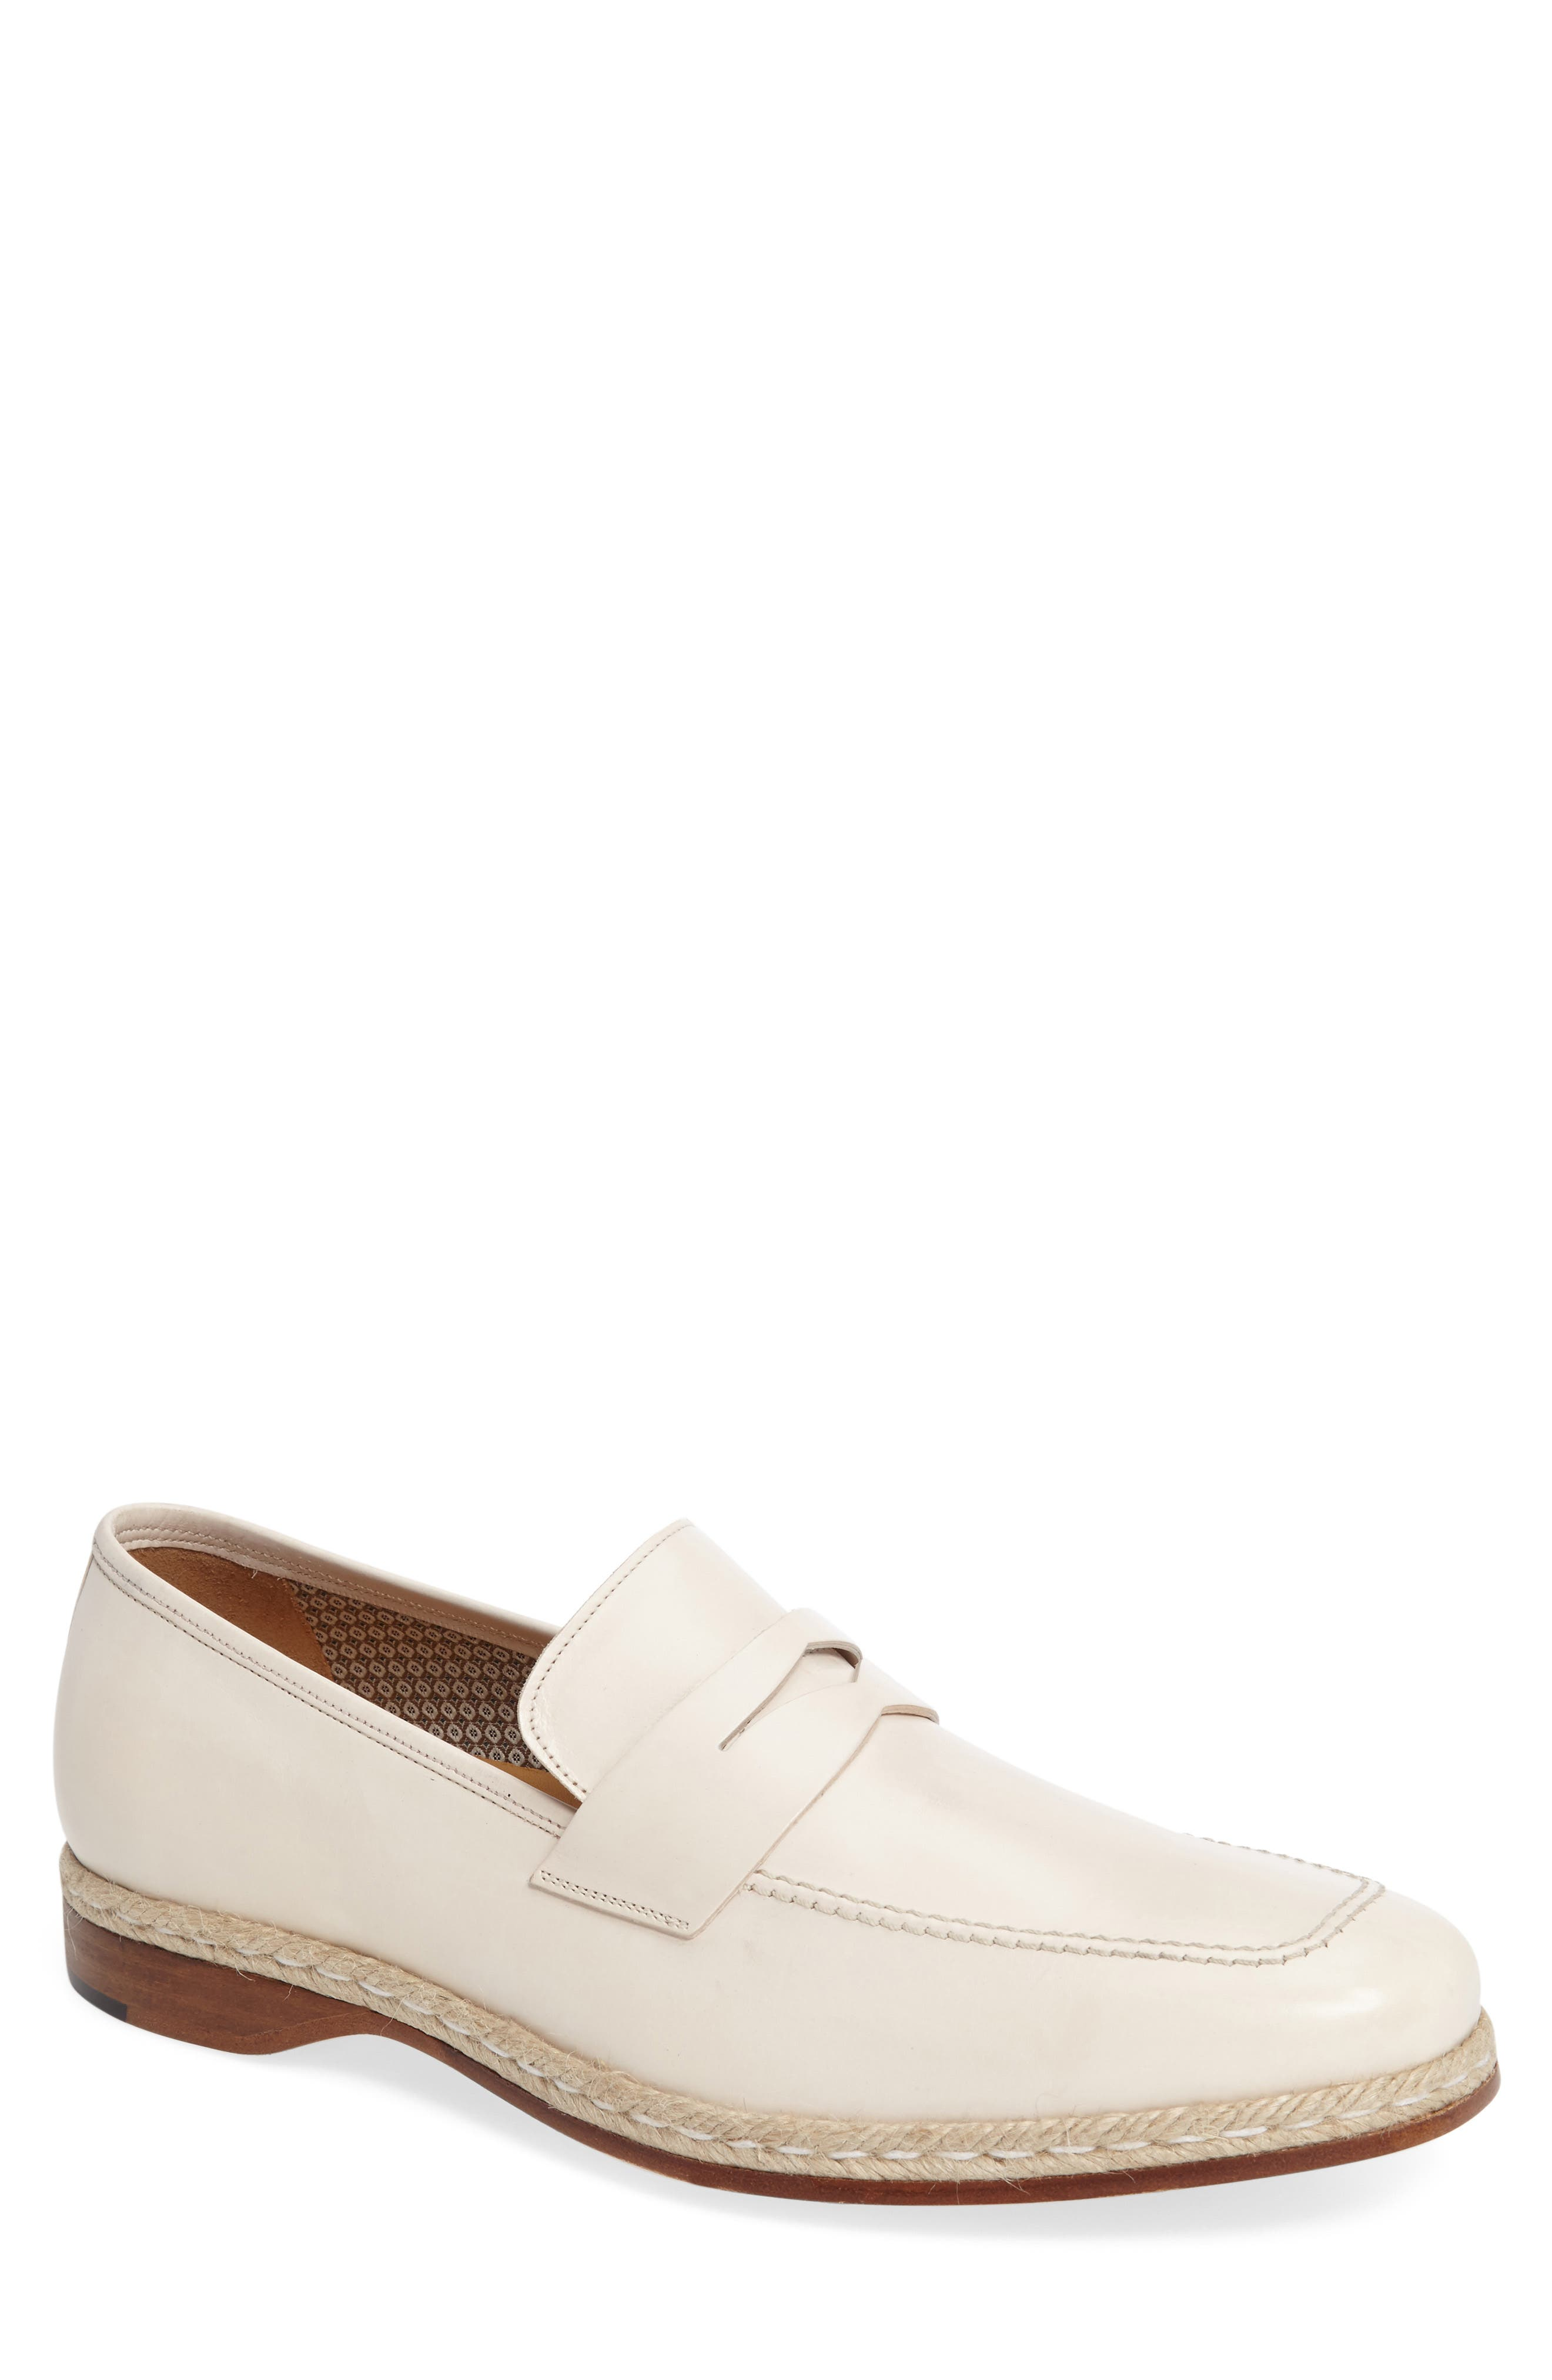 Battani Penny Loafer,                         Main,                         color, BONE LEATHER